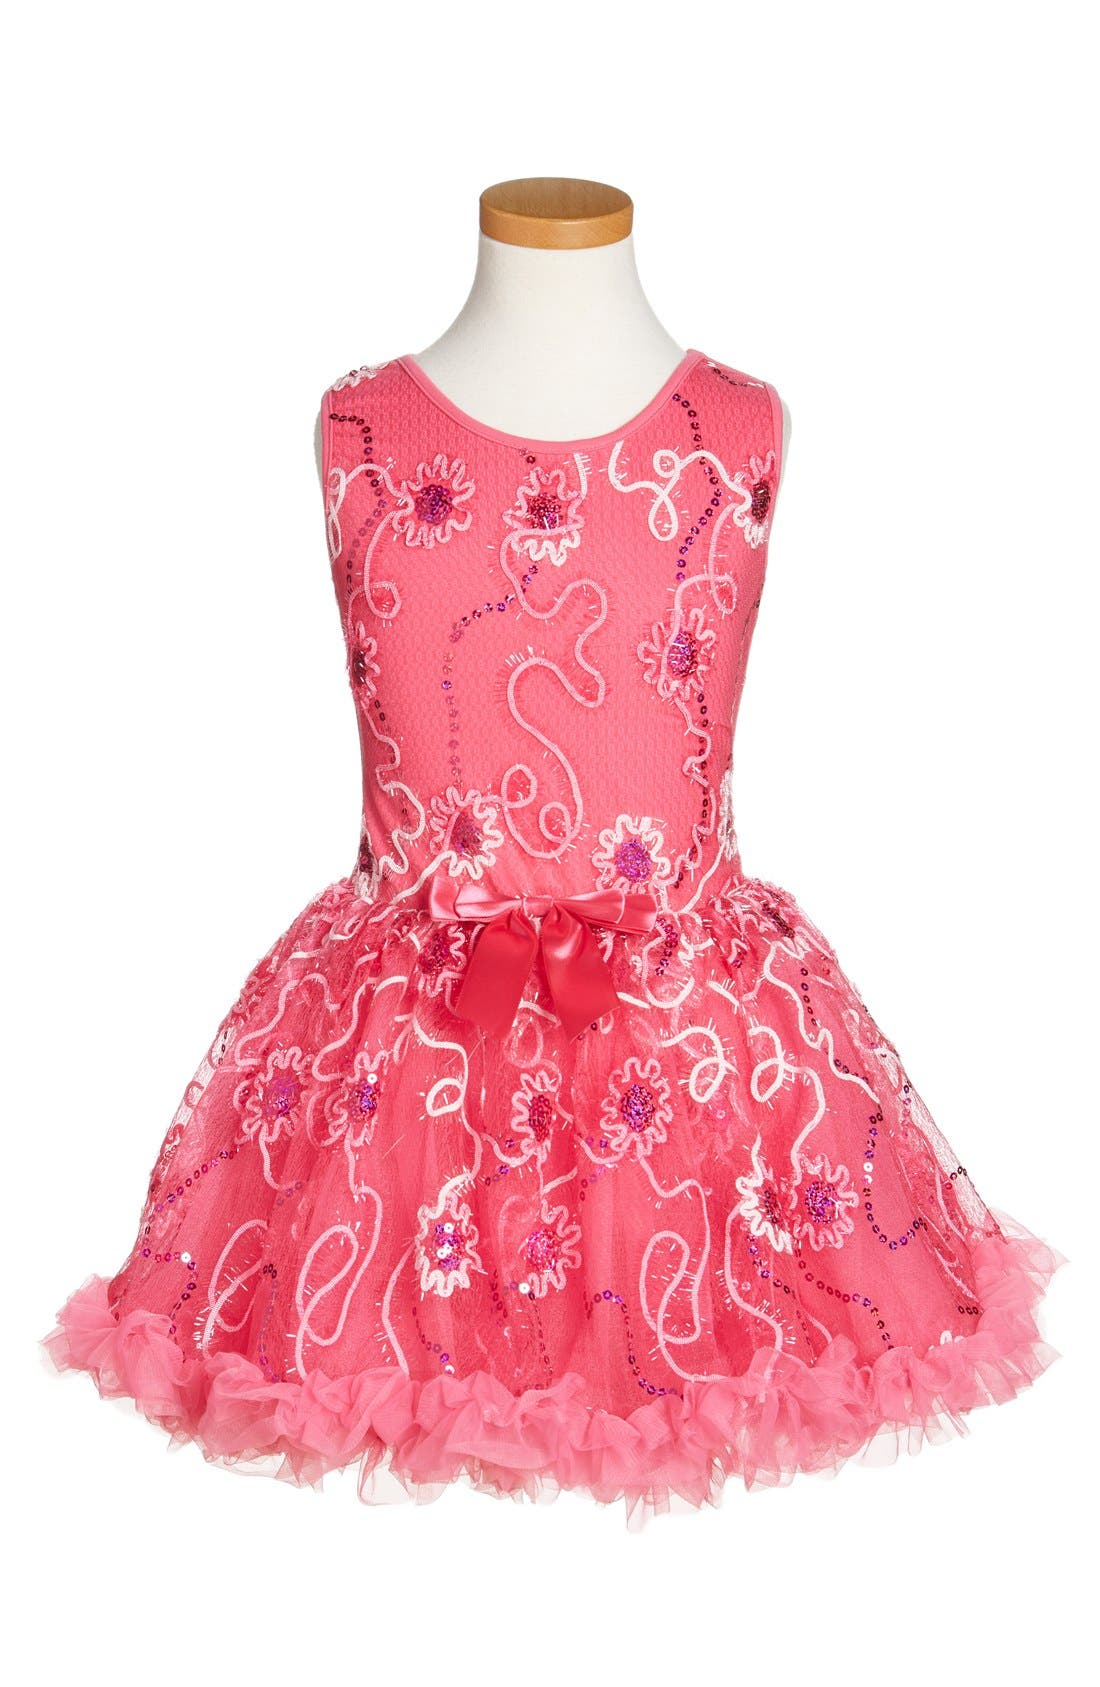 Popatu Sleeveless Sequin Dress (Toddler Girls & Little Girls)